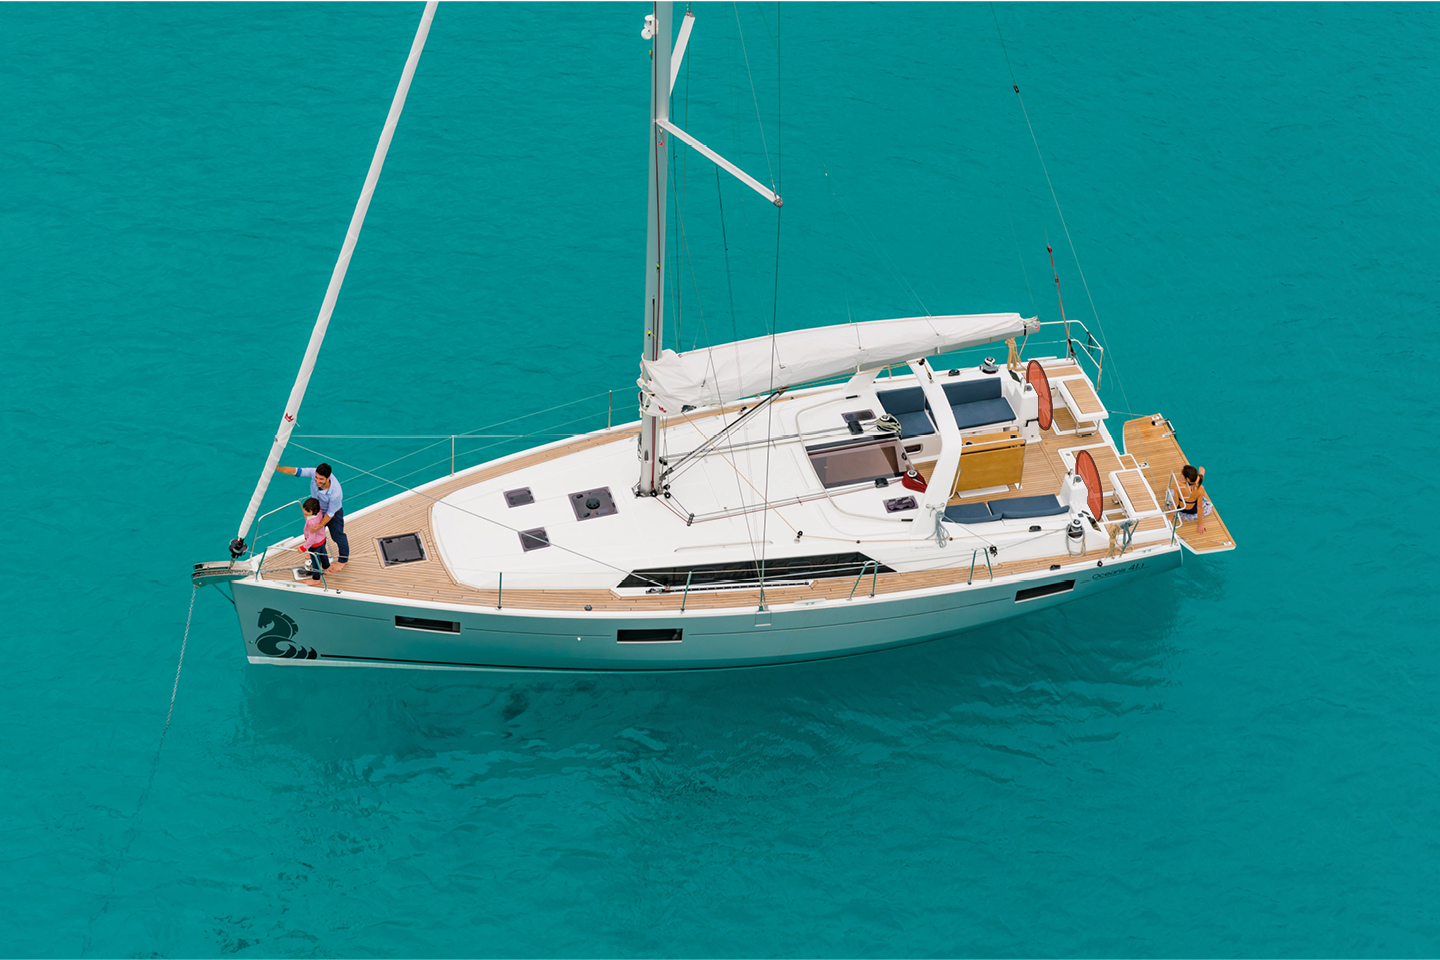 Outdoor Comfort And Protection Equipment For Sailboats Chx Marine